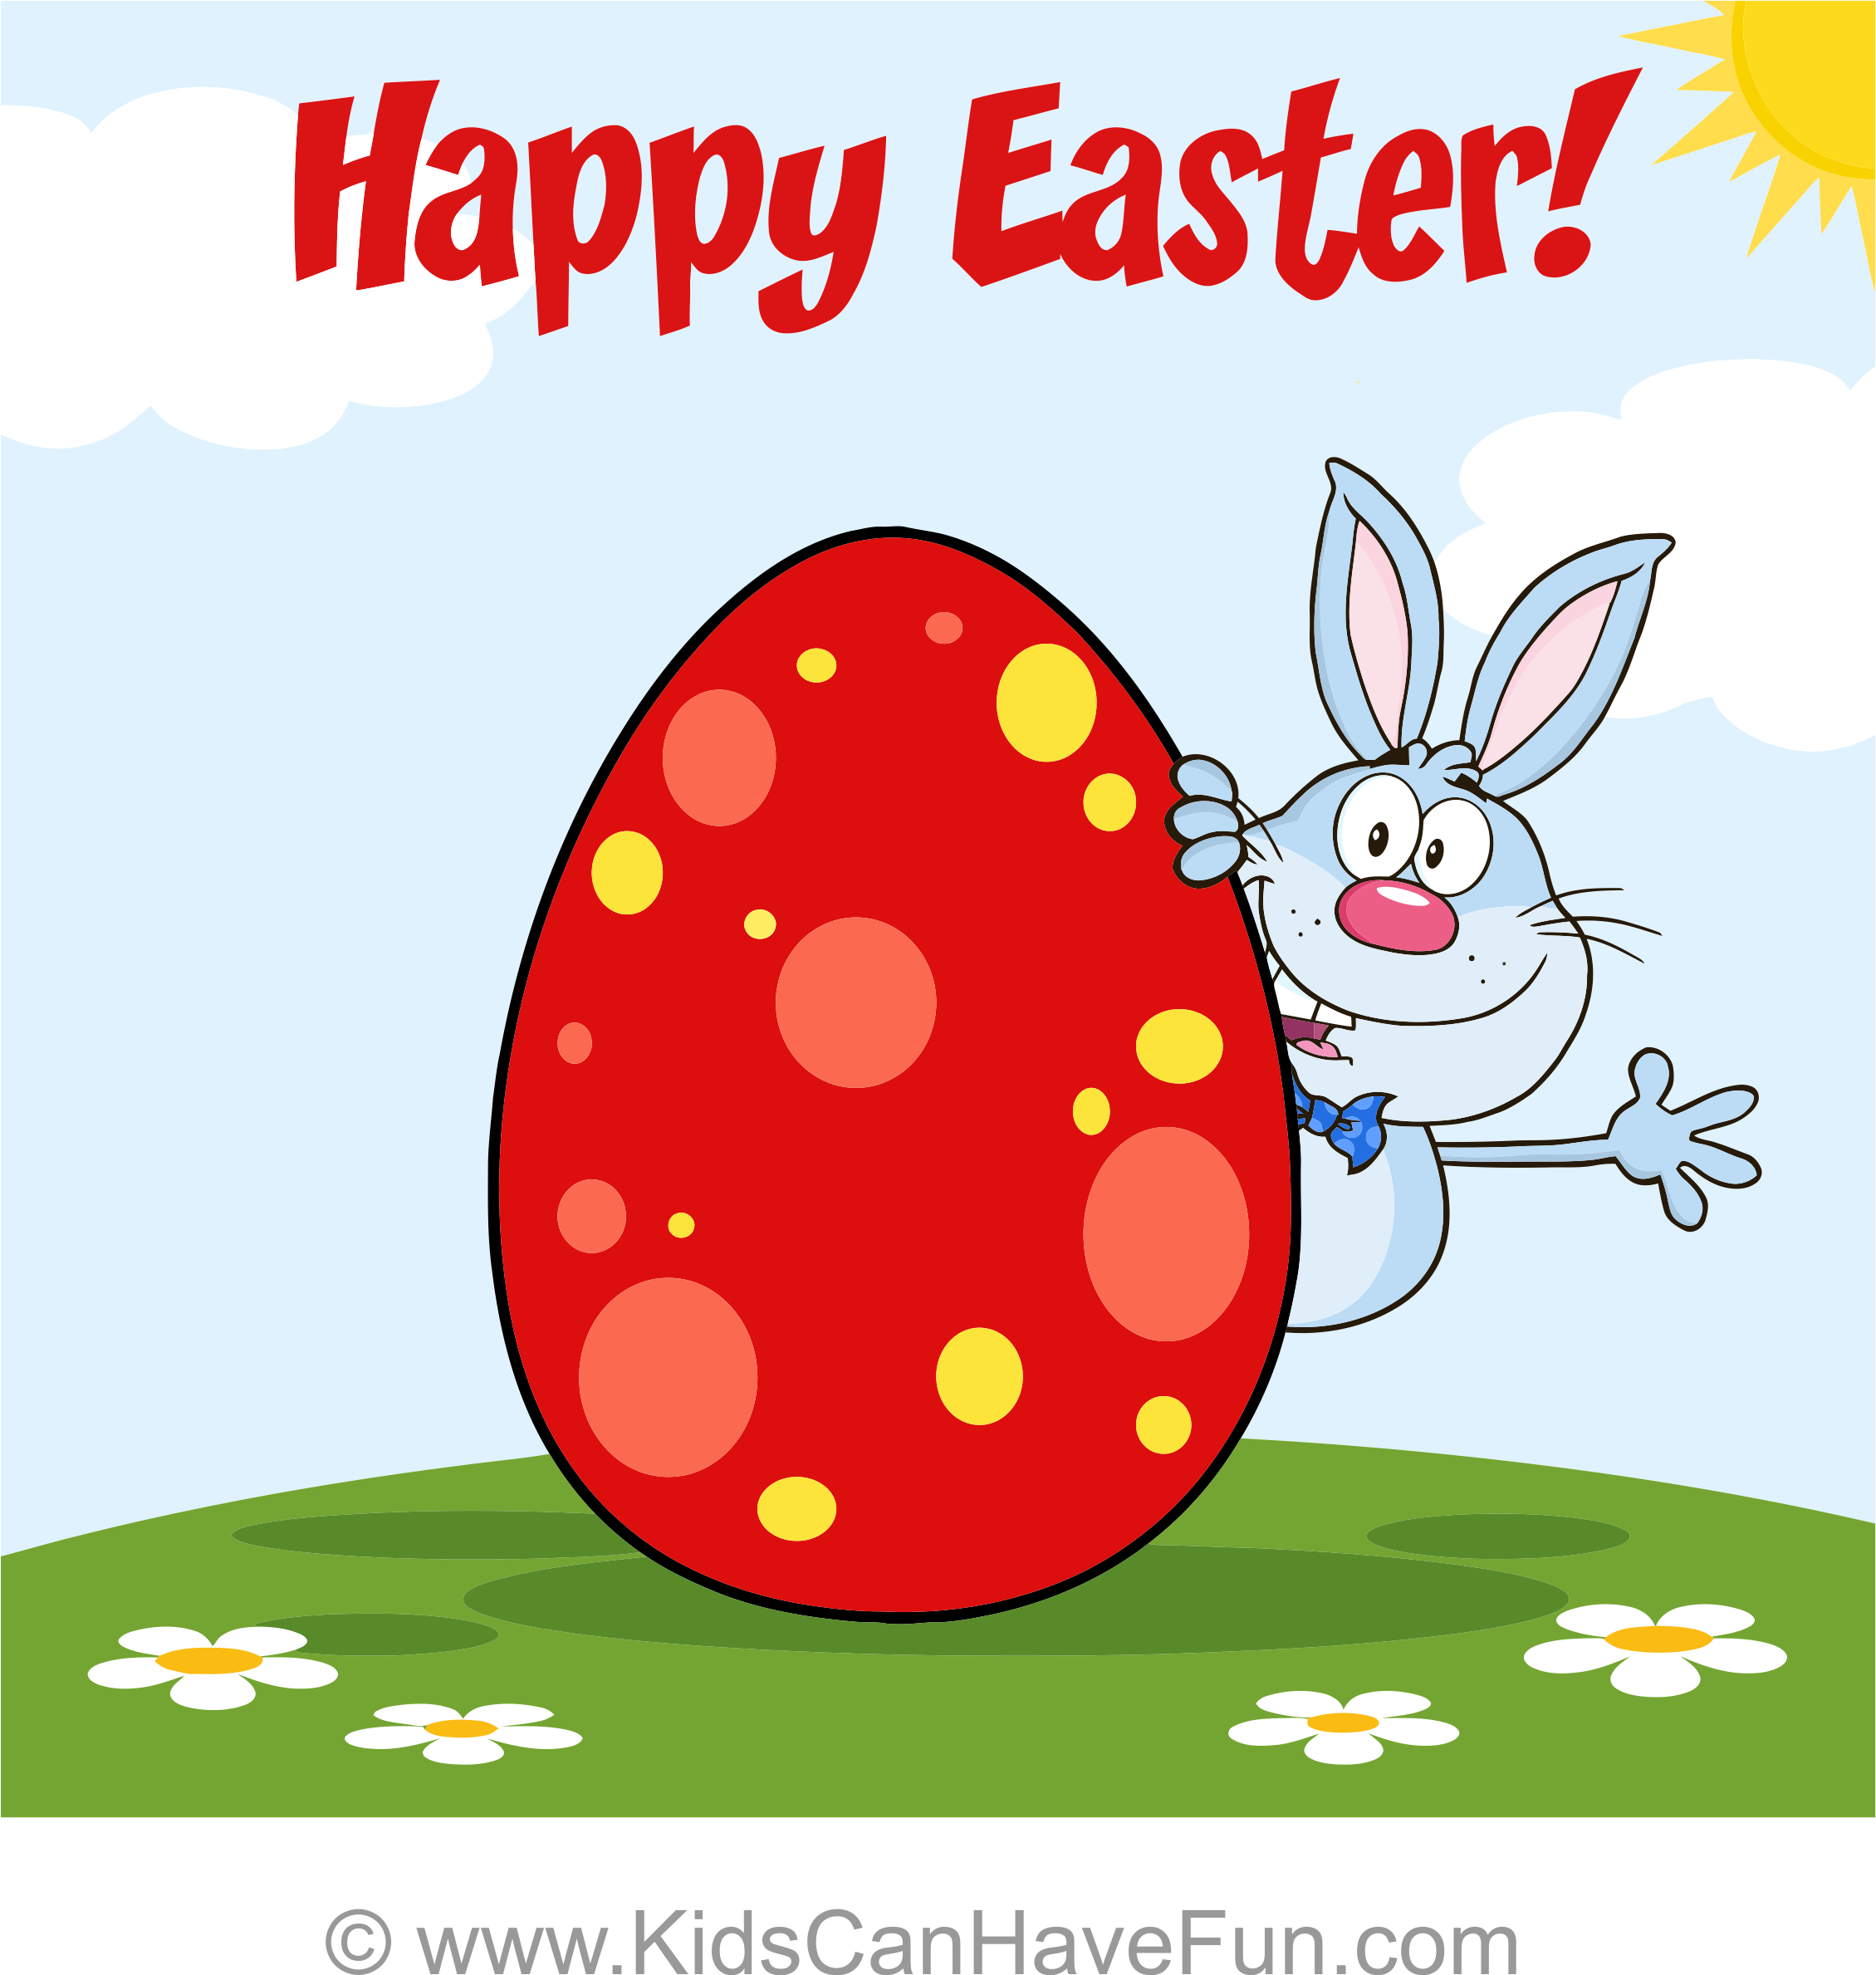 Free Happy Easter Bunny And Egg Greeting Card 1 Blank